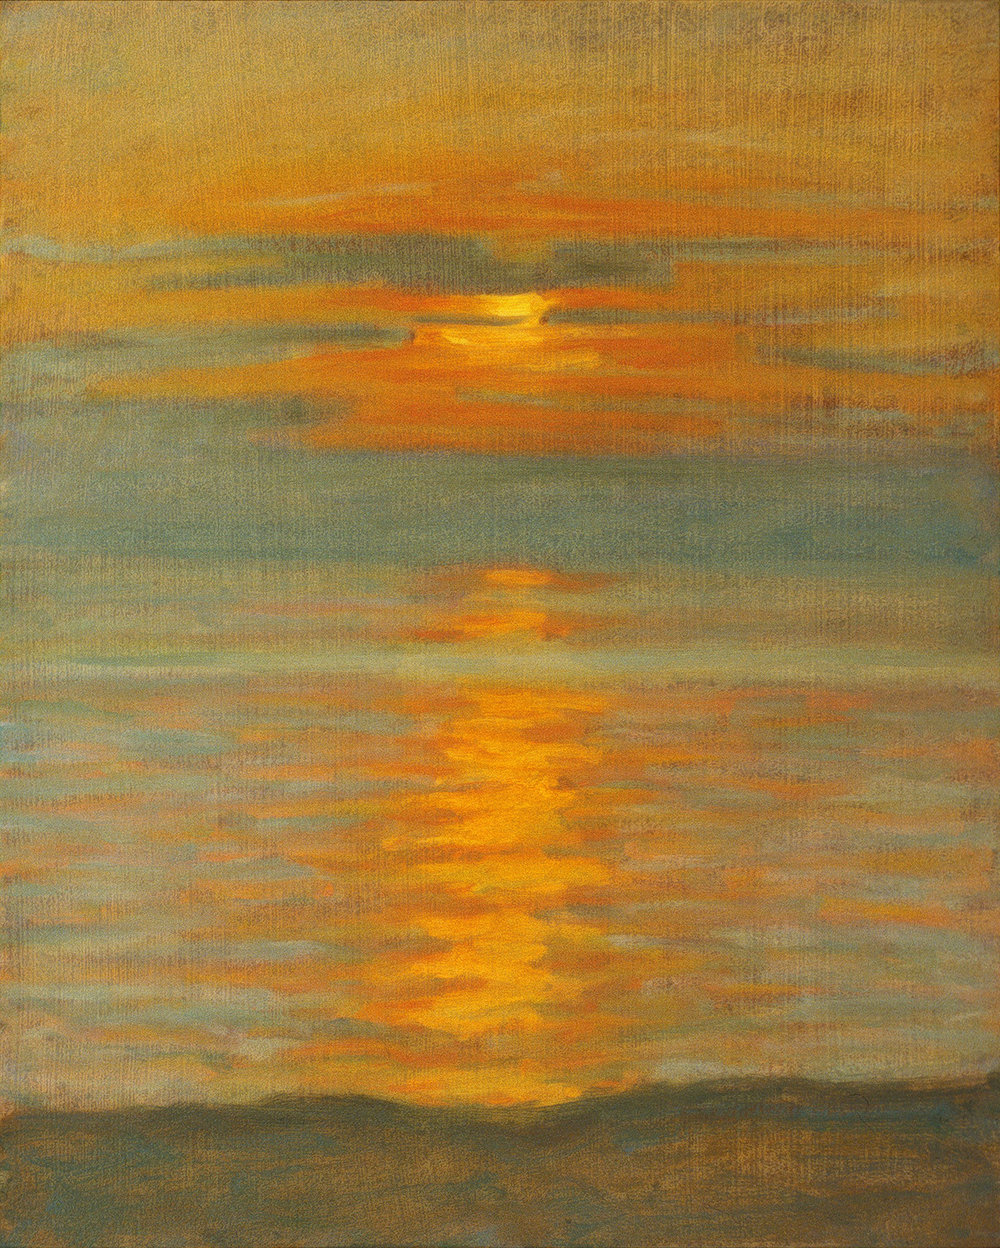 Sunset on Lake Michigan   | oil on canvas | 15 x 12"